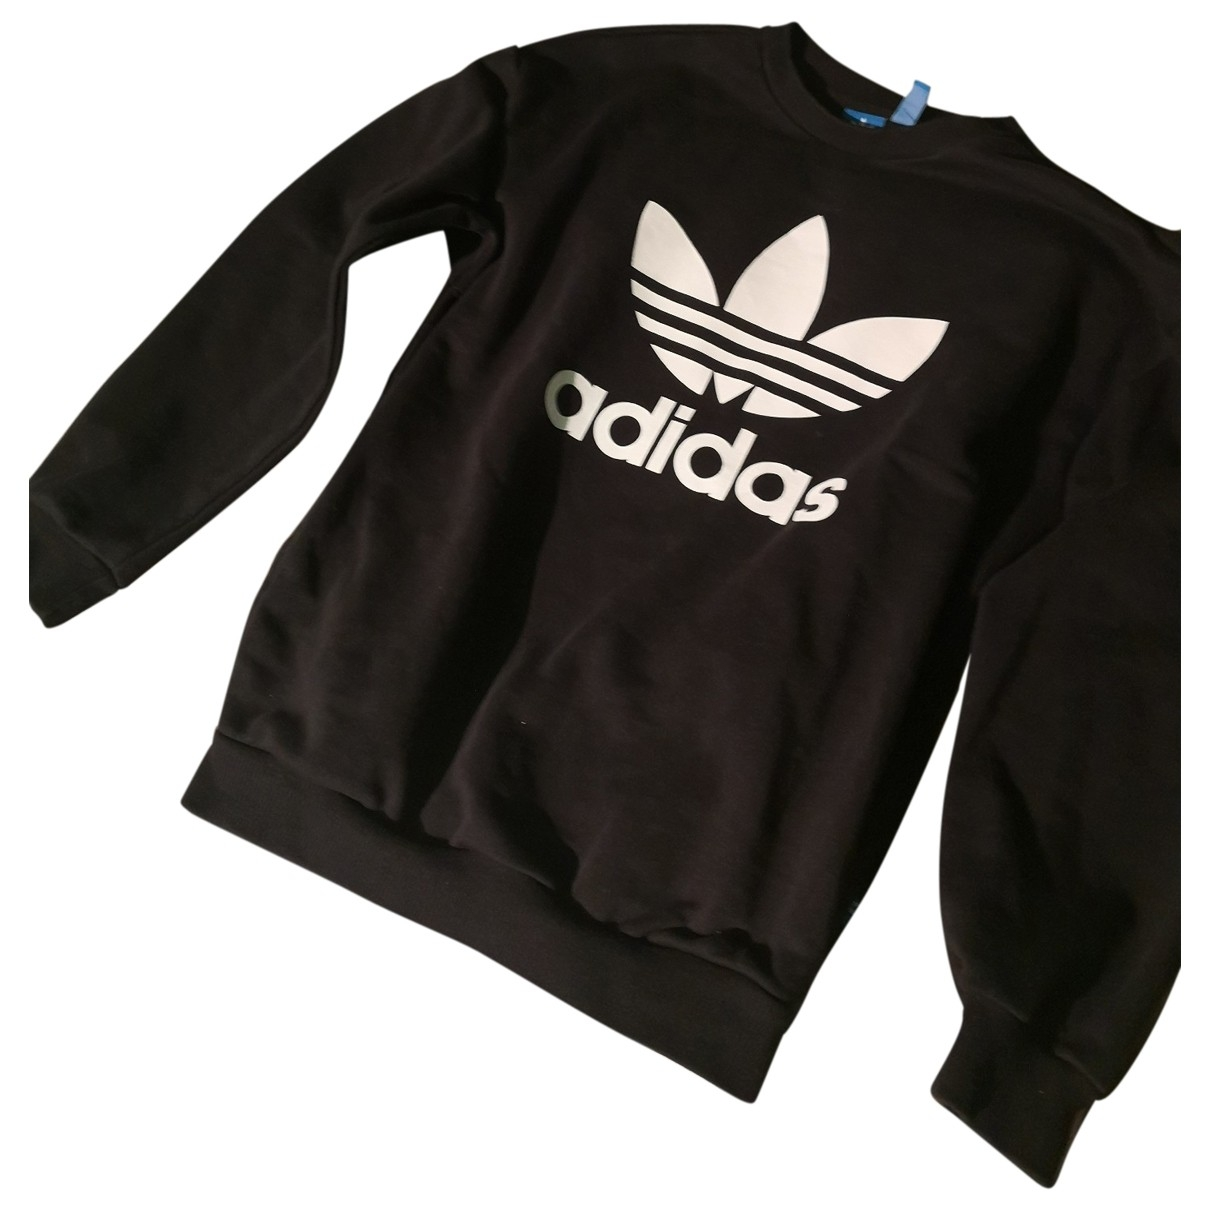 Adidas \N Black Cotton Knitwear for Women XS International